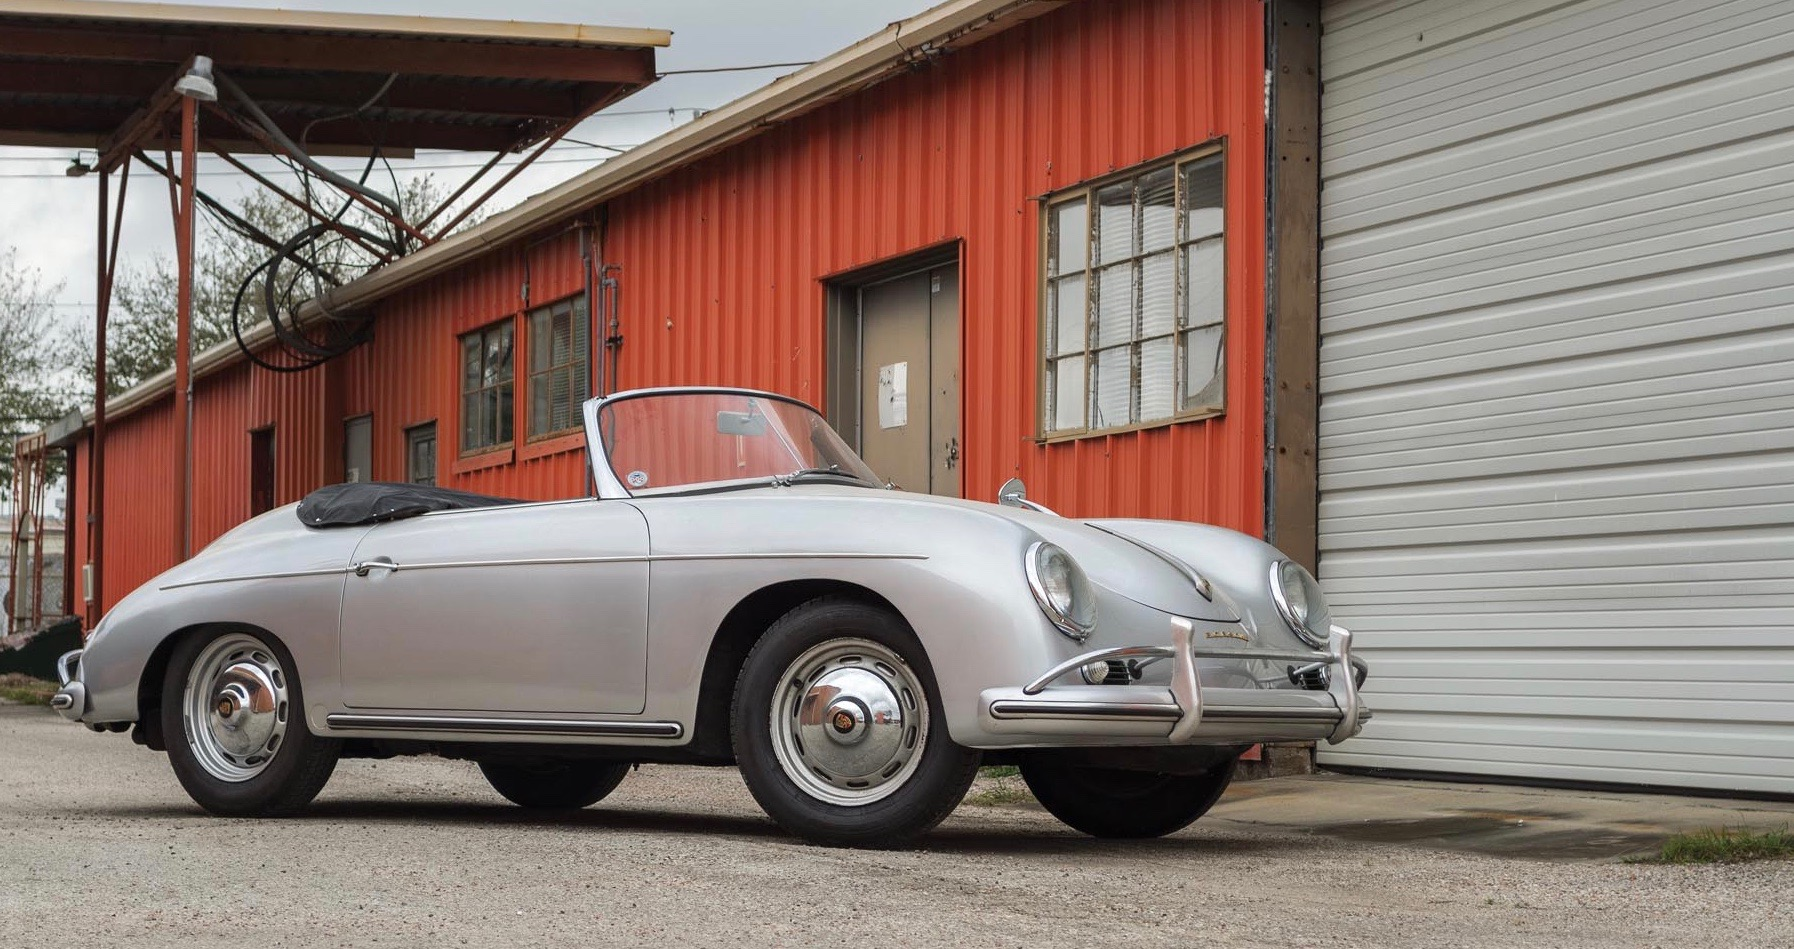 Worldwide, Low-mileage is theme for Worldwide Auctioneers' Texas docket, ClassicCars.com Journal